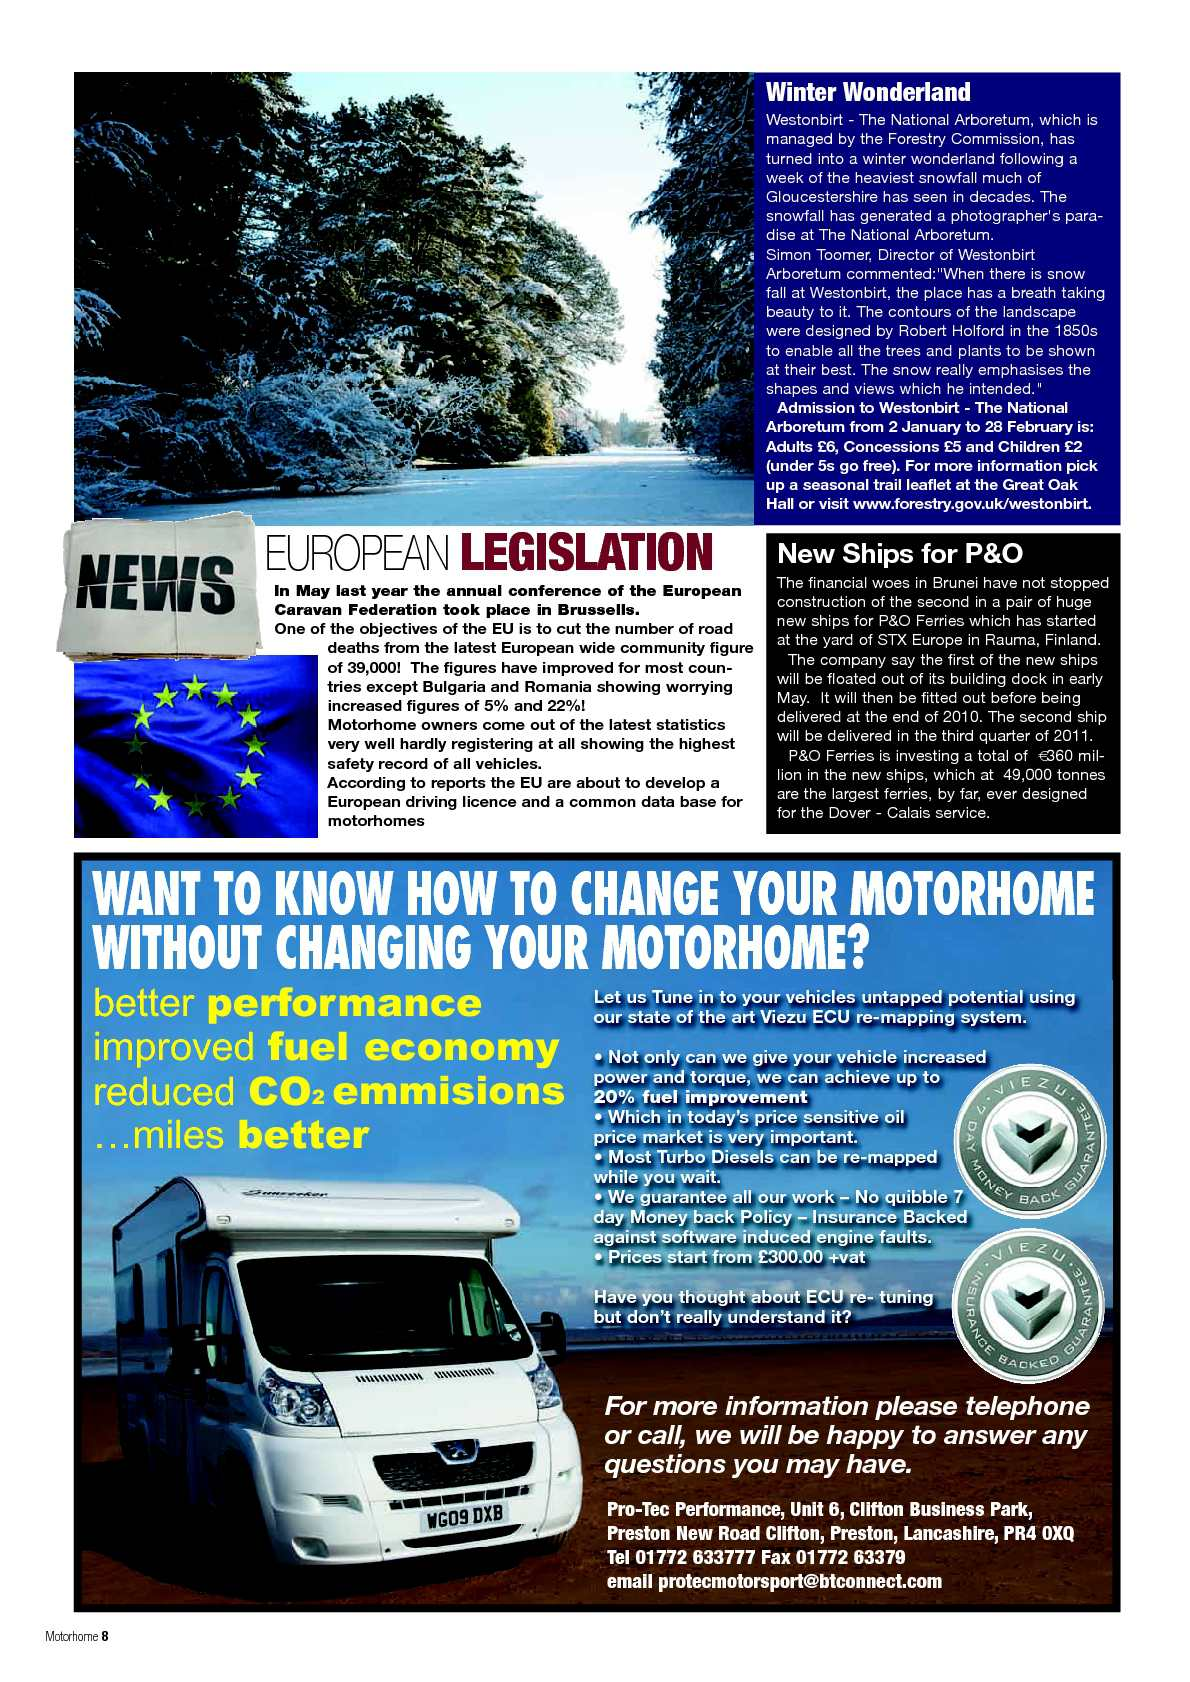 February 2010 - Motorhome Monthly Magazine - CALAMEO Downloader